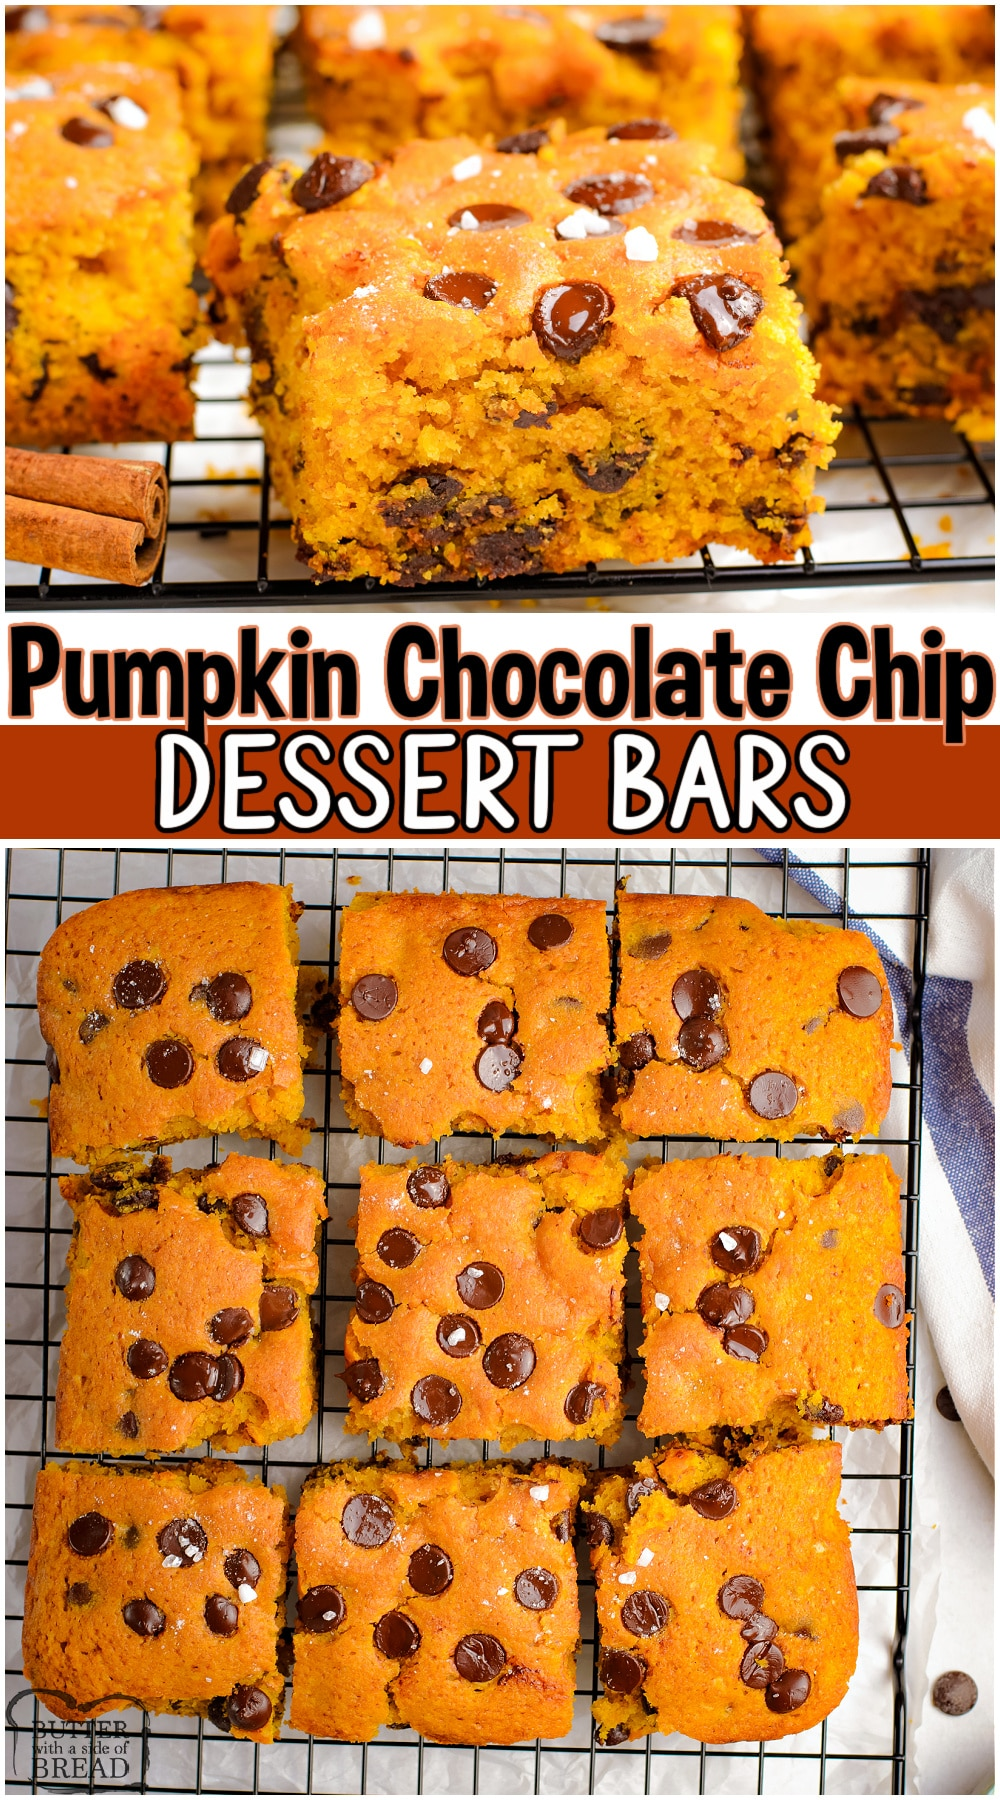 Pumpkin Chocolate Chip Bars made with pumpkin puree, brown sugar, brown butter & a warm blend of Fall spices! Pumpkin dessert bars loaded with chocolate chips & sprinkled with sea salt for the perfect finishing touch! #pumpkin #chocolatechip #baking #Fall #brownbutter #easyrecipe from BUTTER WITH A SIDE OF BREAD